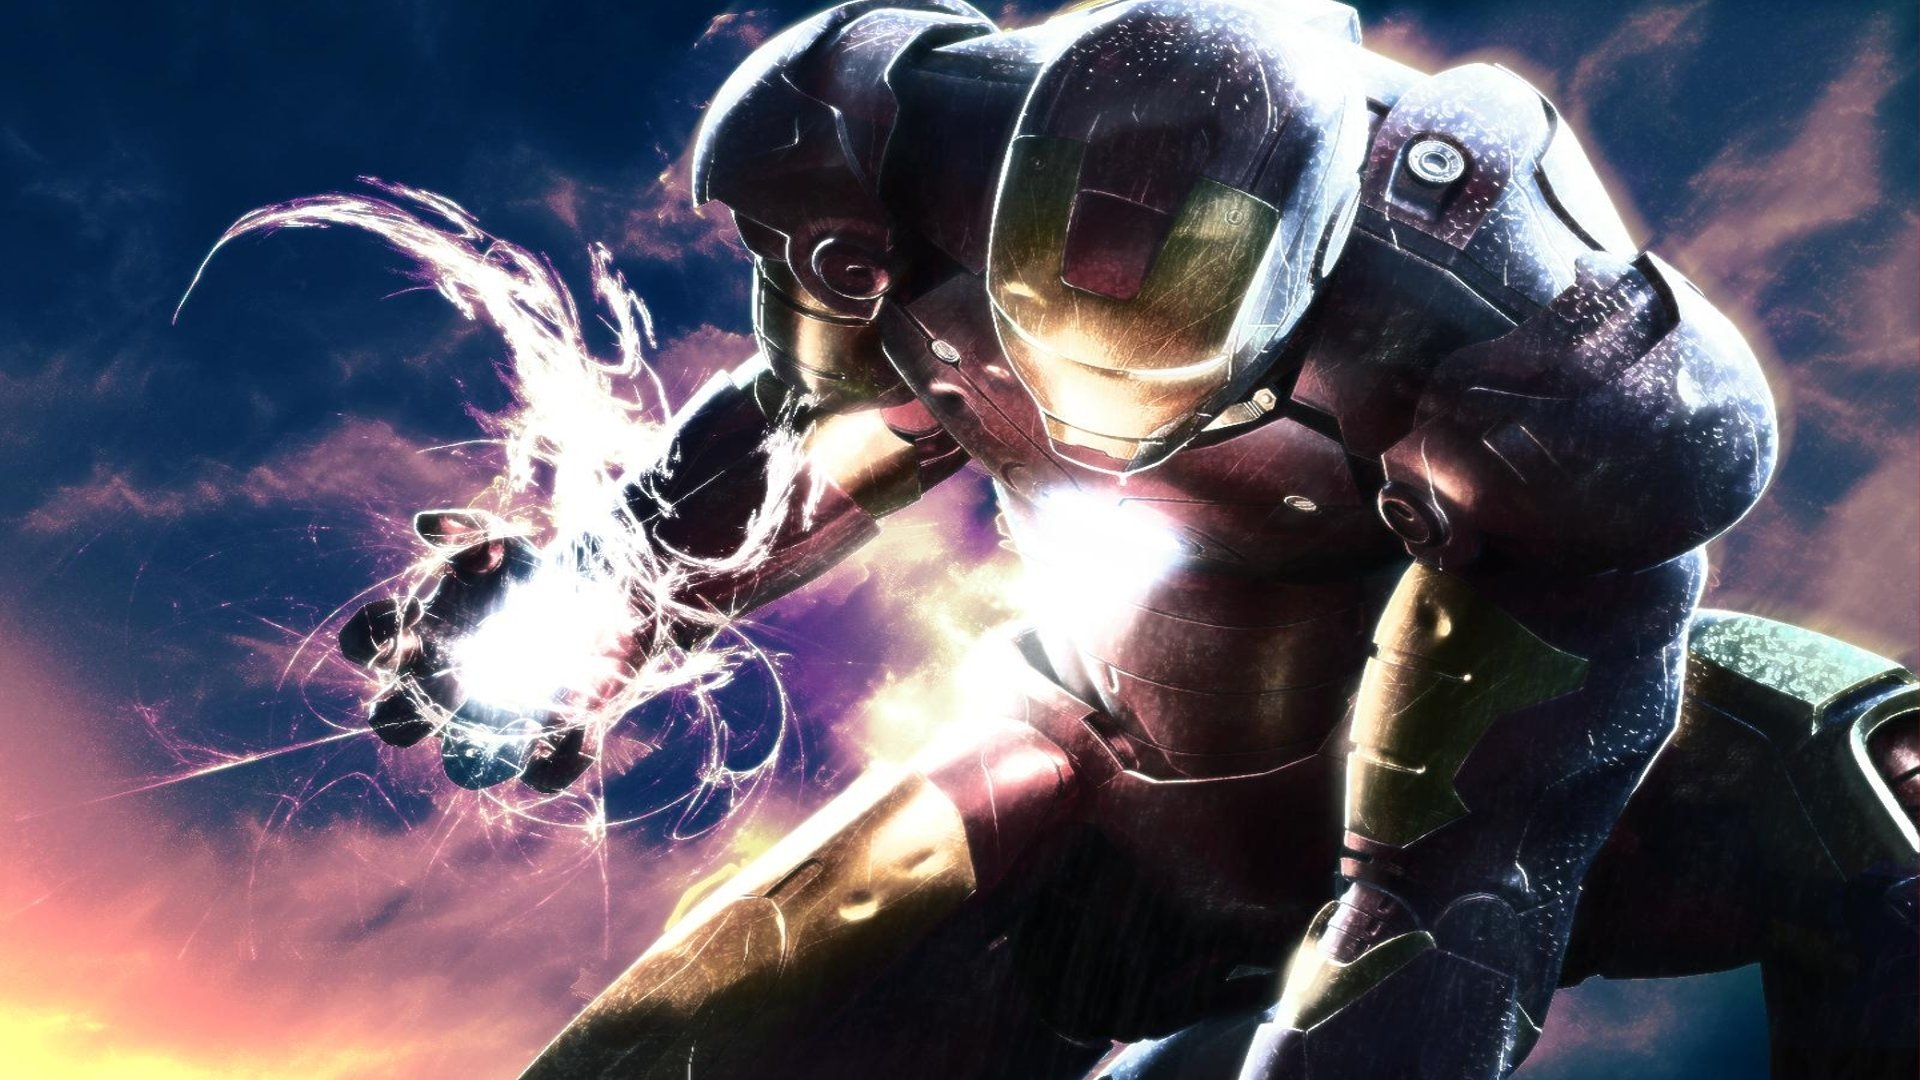 Movie - Iron Man  Comics Energy Avengers Superhero Tony Stark Comic Fantasy Wallpaper